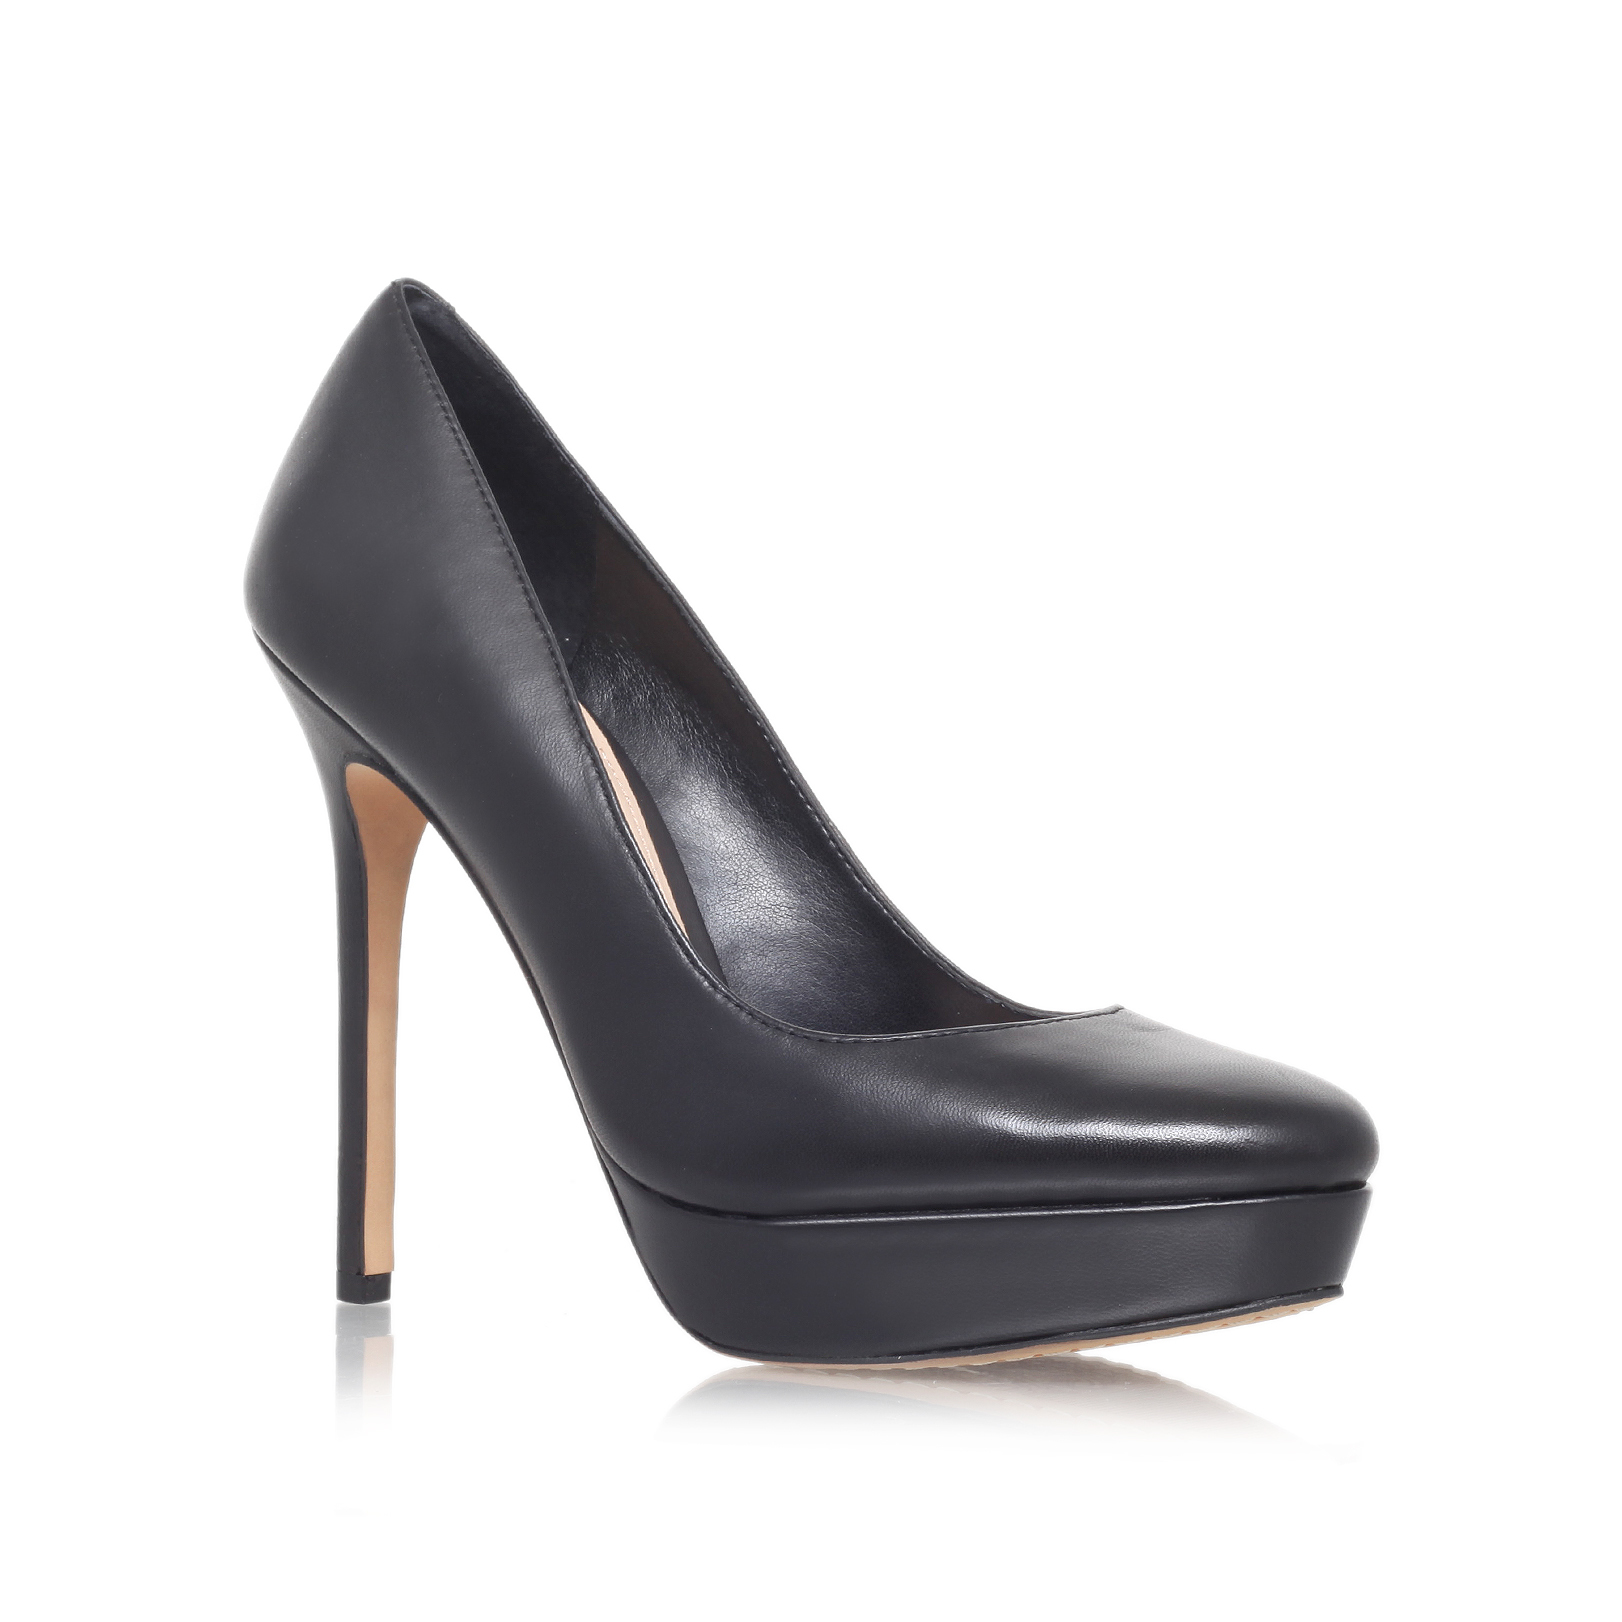 Vince Camuto Niomi Black High Heel Court Shoes By Vince